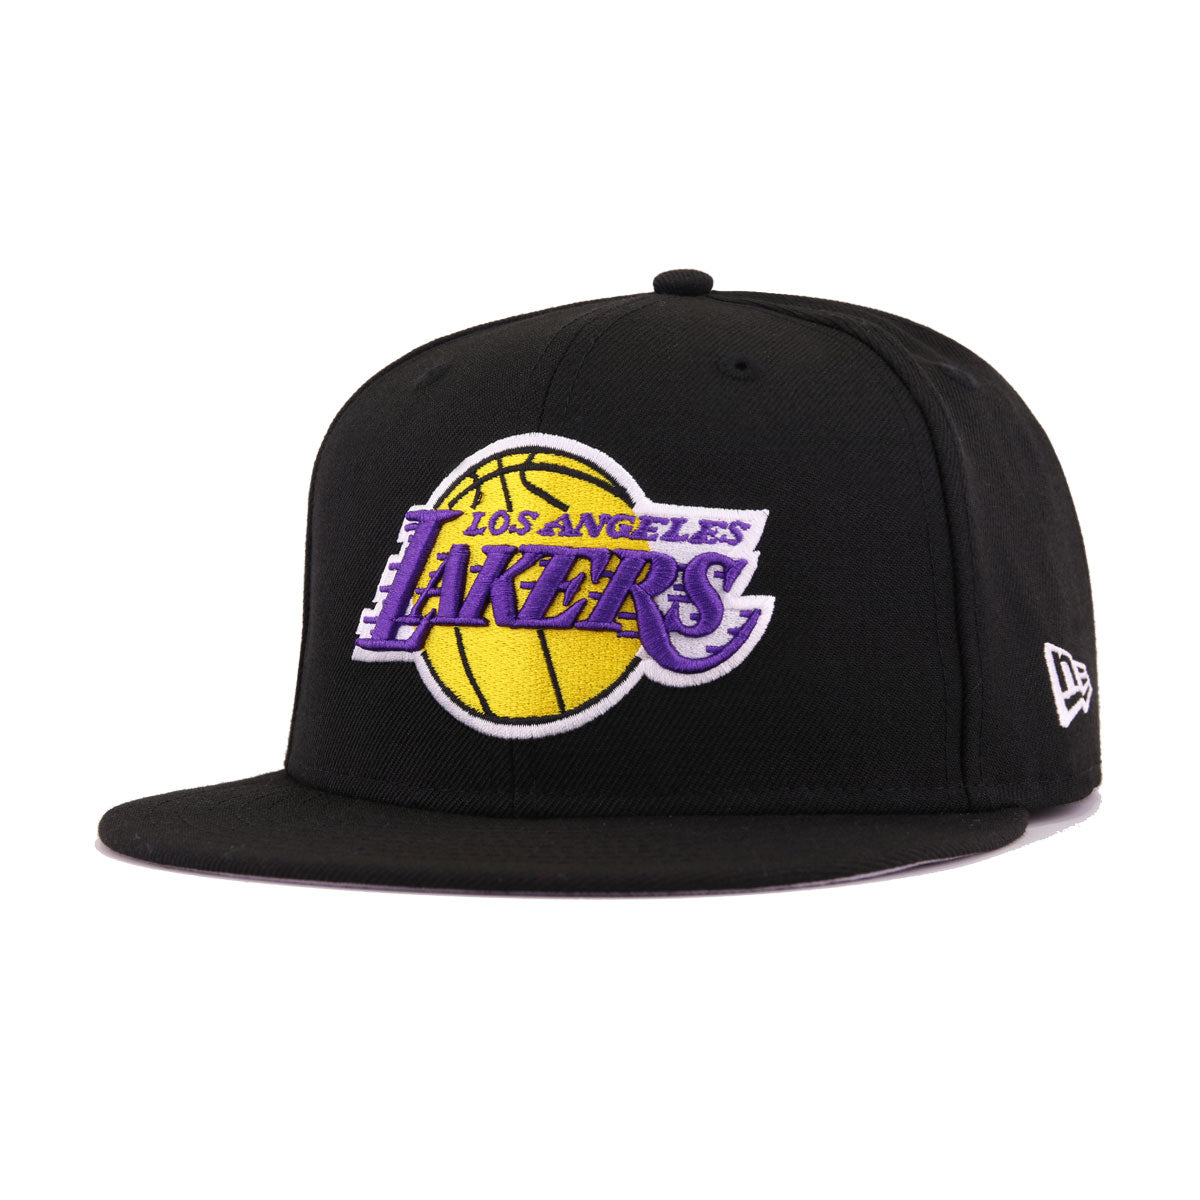 3275f2a594daa5 Los Angeles Lakers Black 16 Championships New Era 59Fifty Fitted